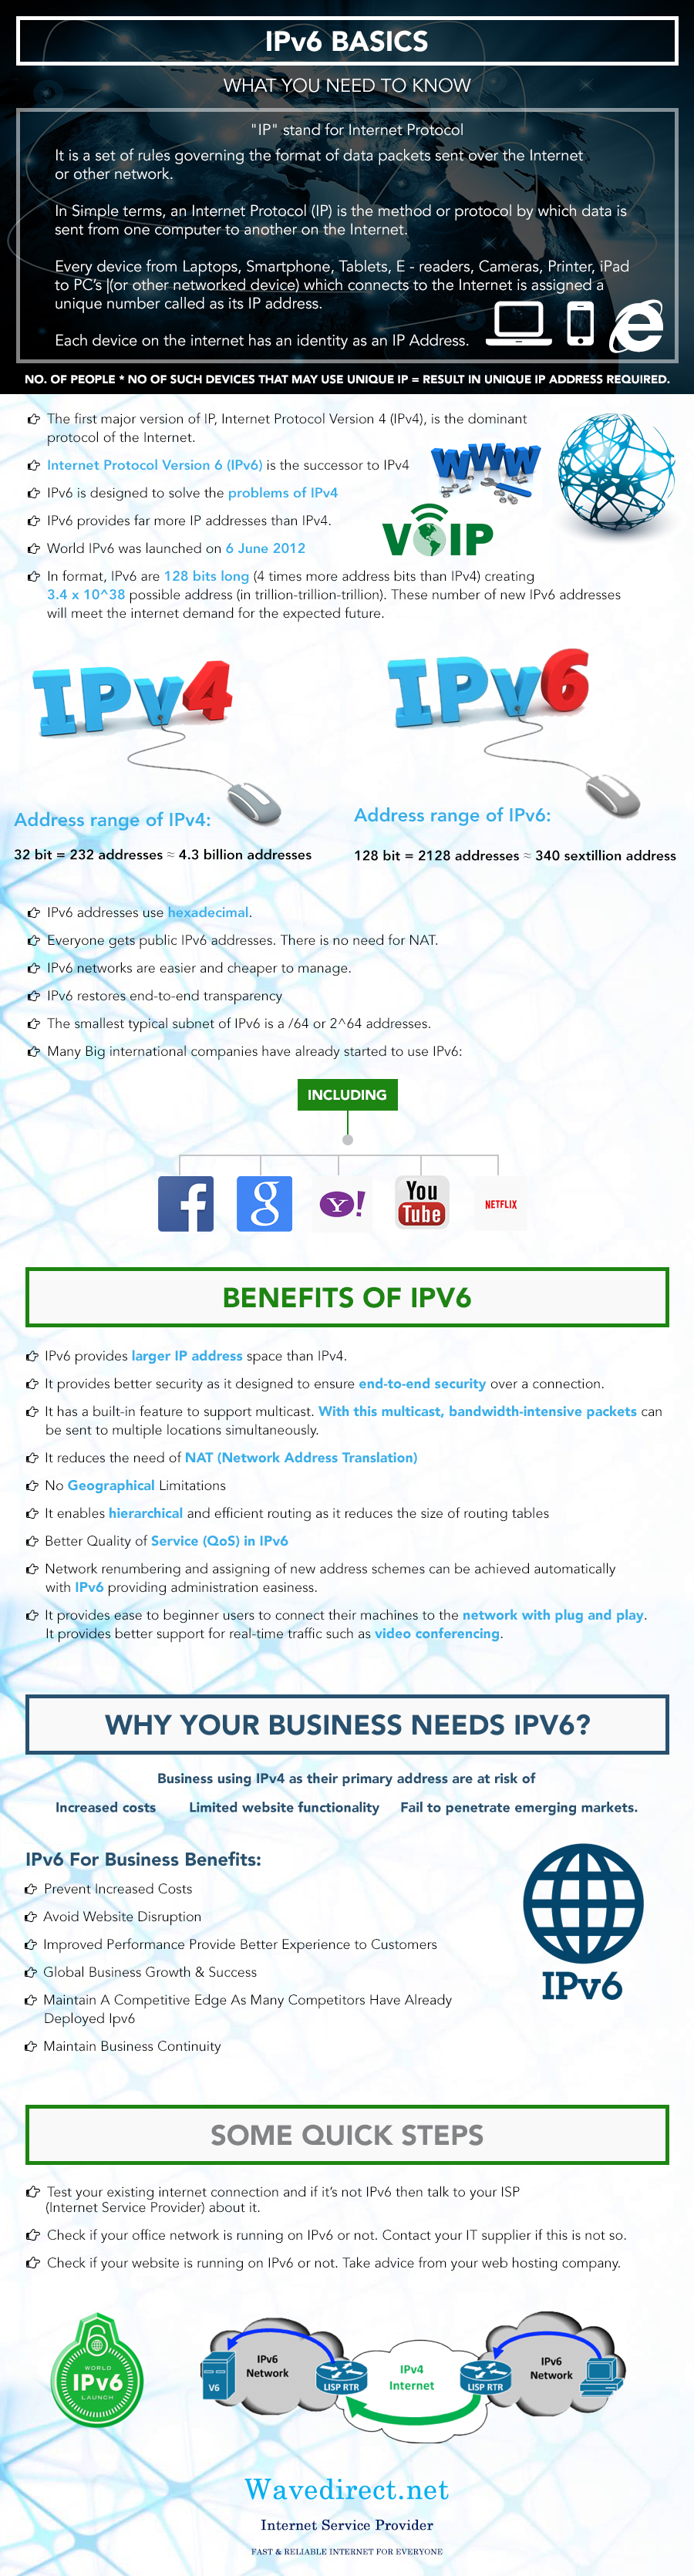 IPv6 Basics: What You Need to Know